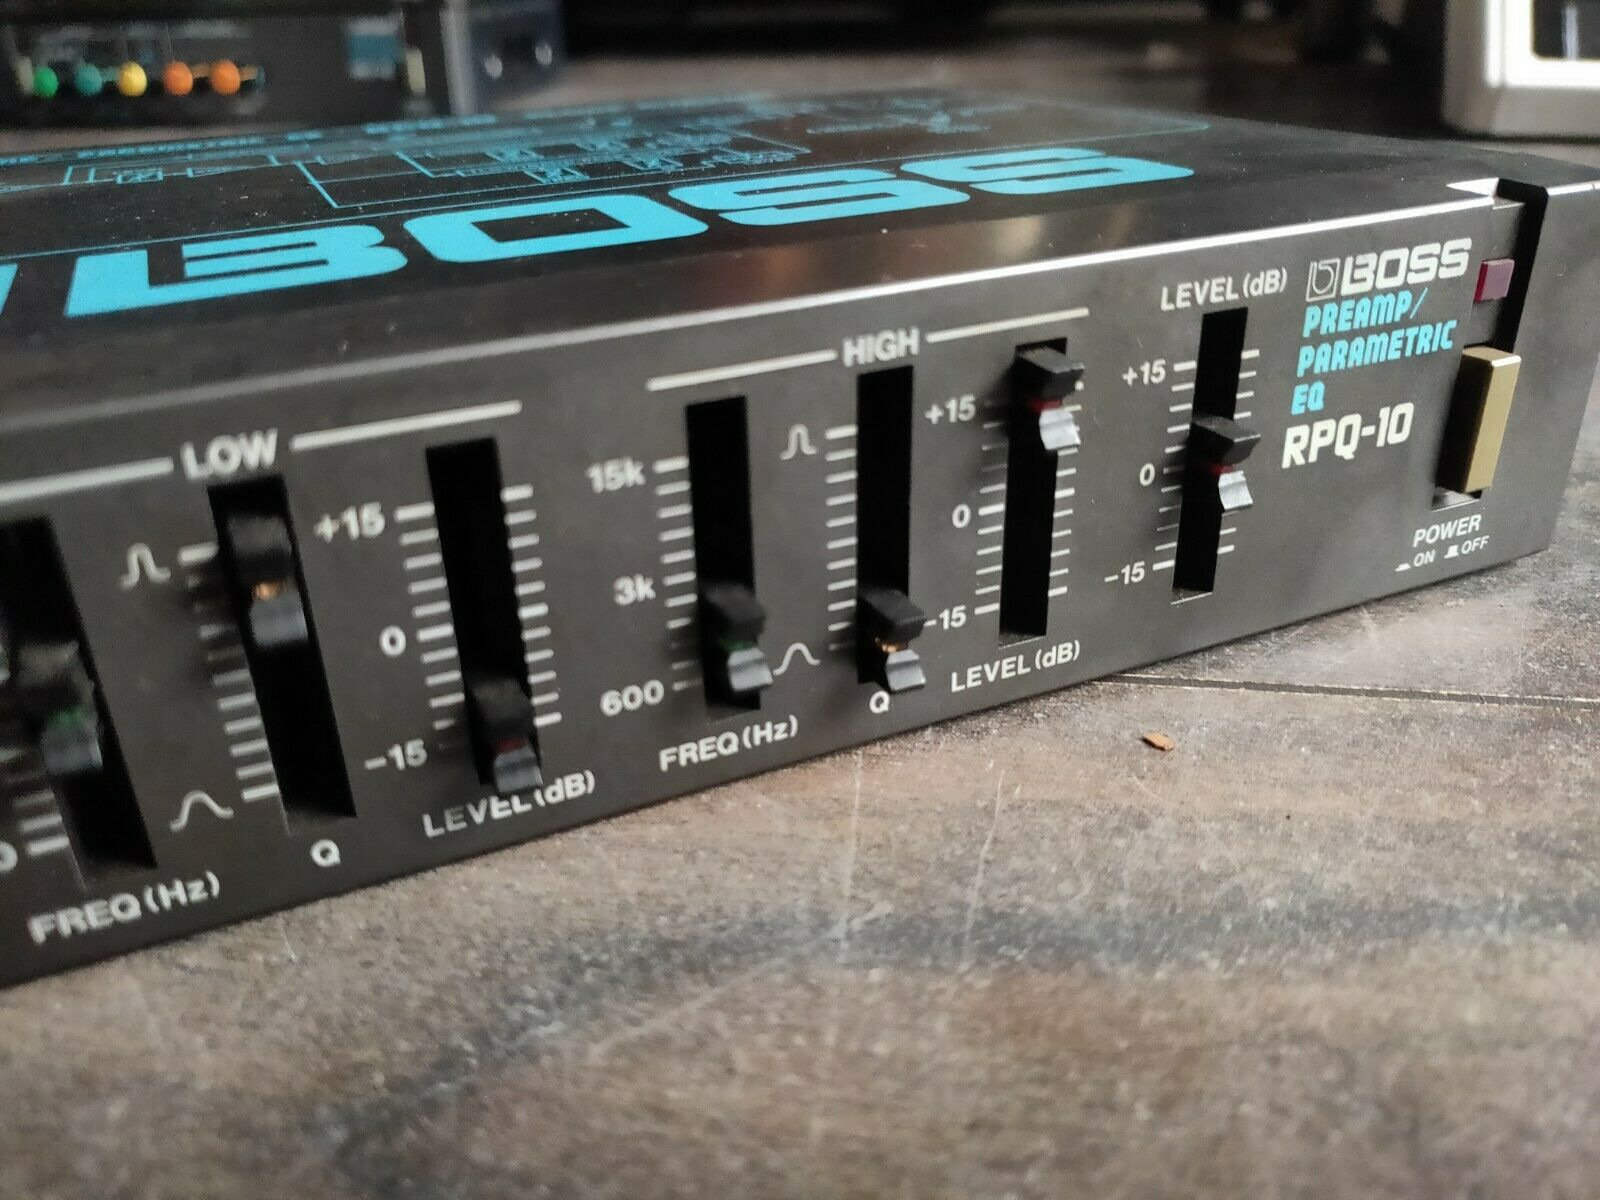 1980's Boss RPQ-10 Parametric EQ MIJ Japan Vintage Effects Rack